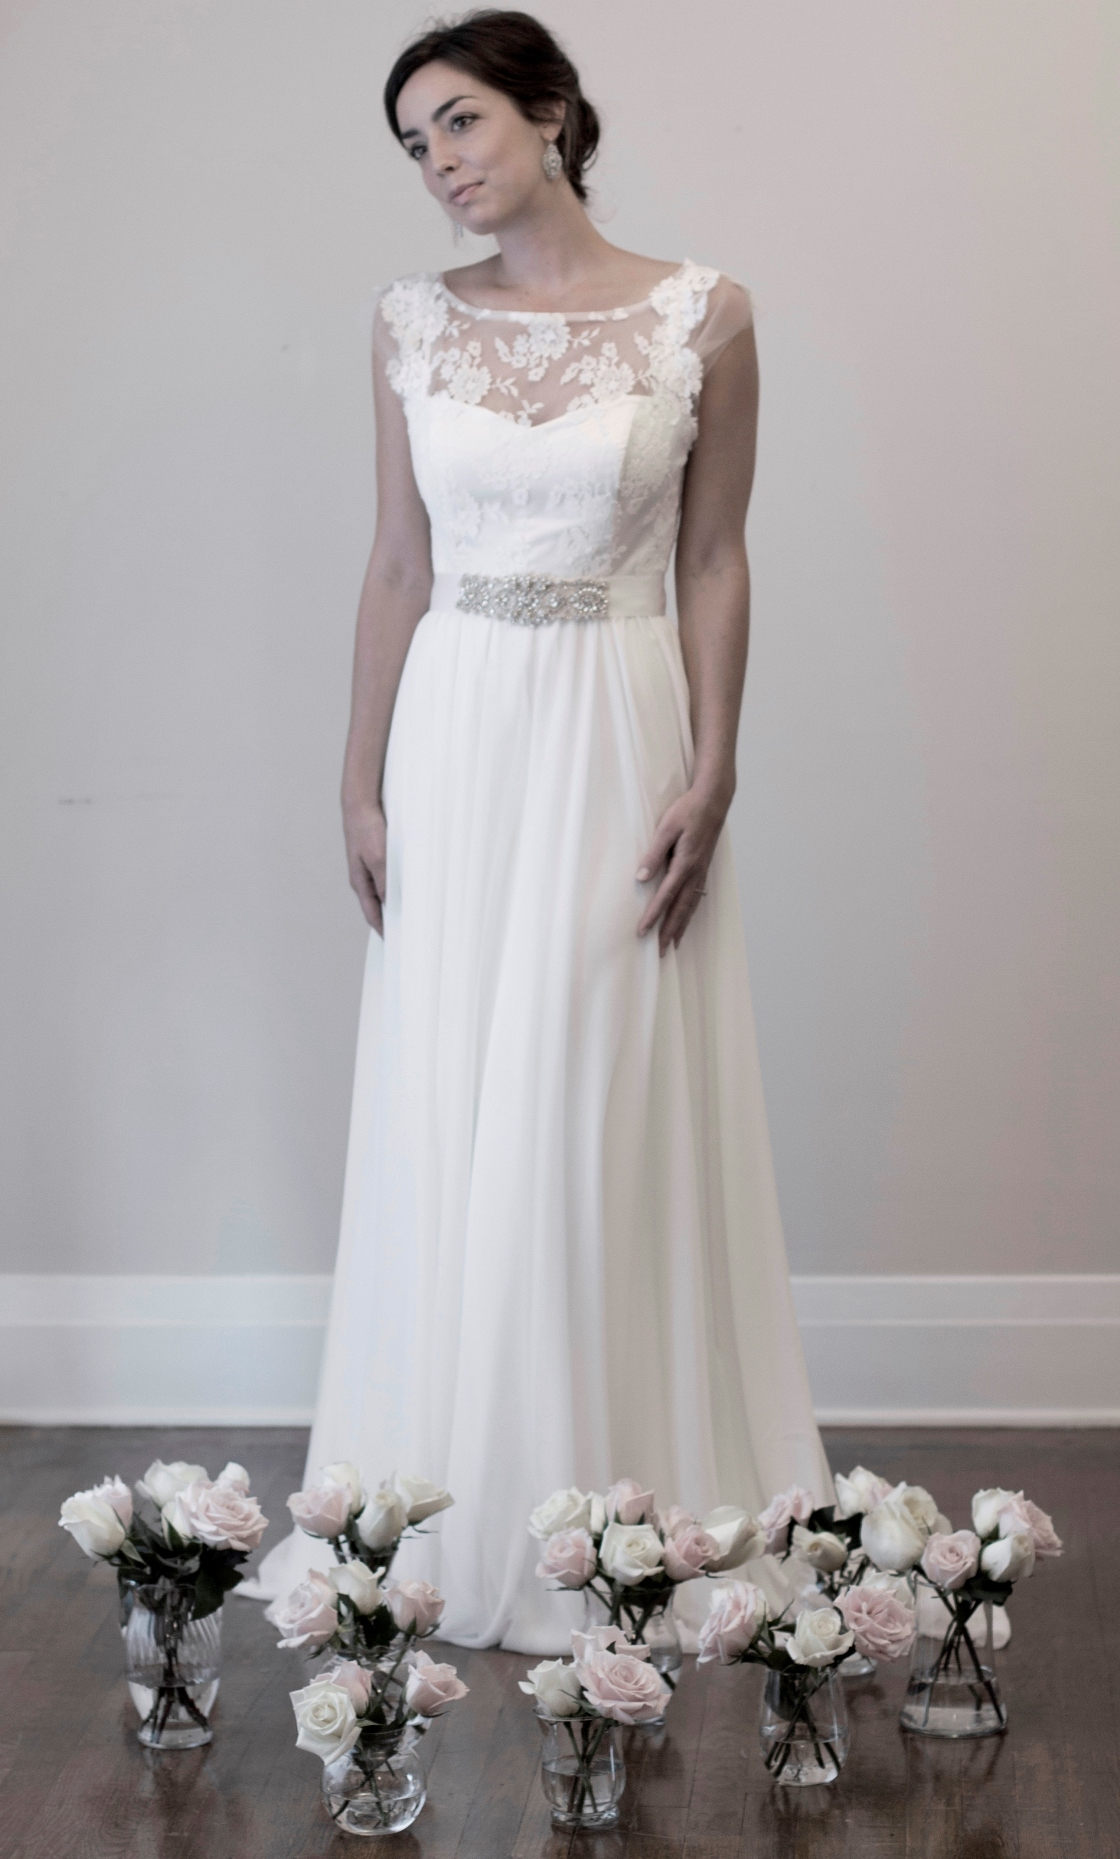 Rose & Delilah's Ophelia Wedding Dress